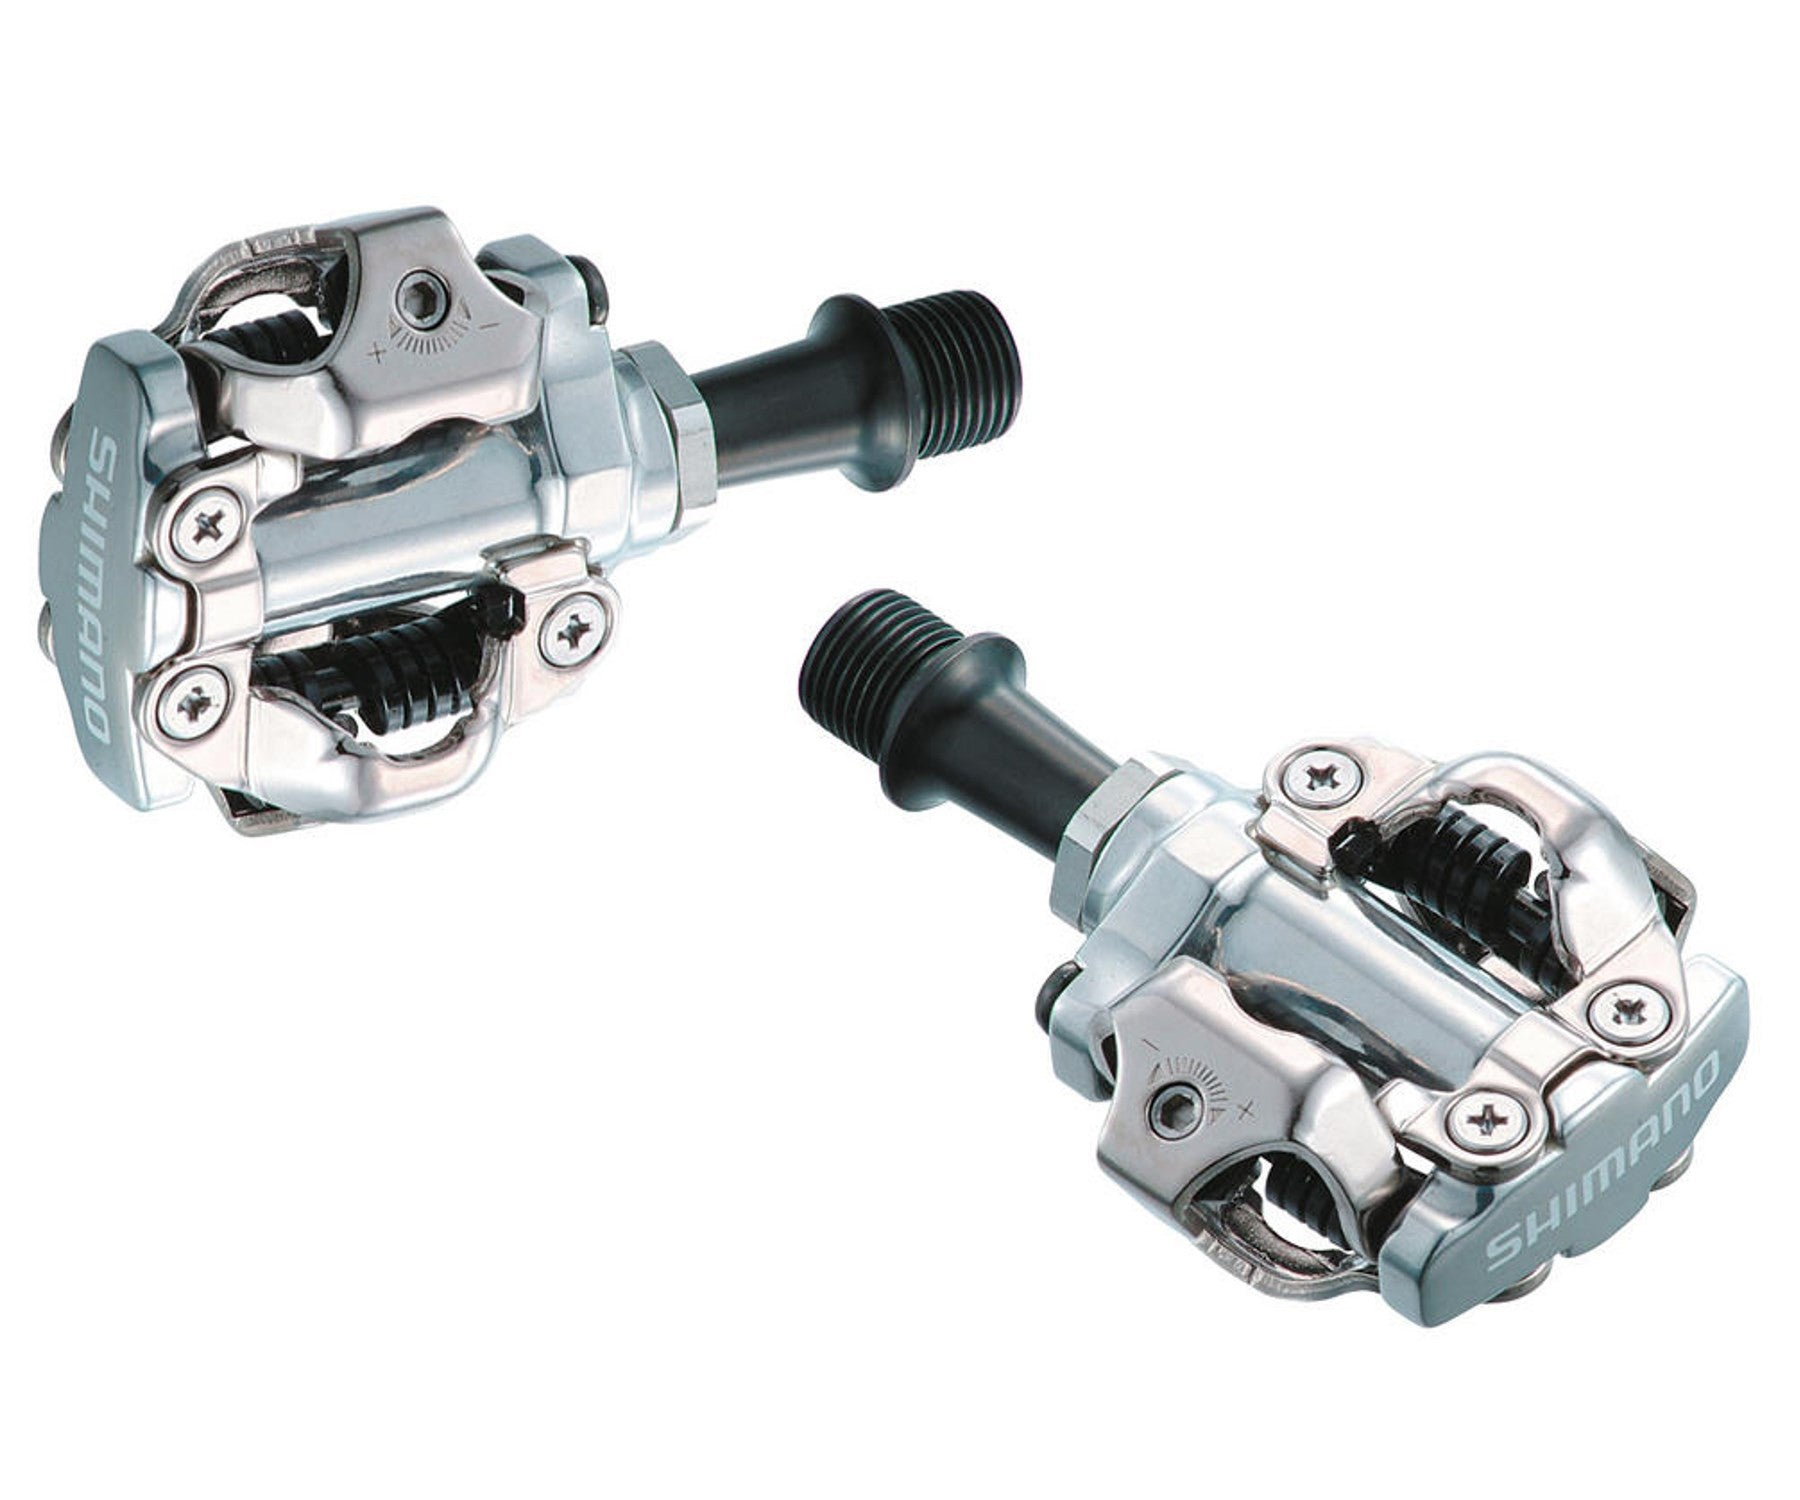 Shimano PD-M540 SPD pedals - Retrogression